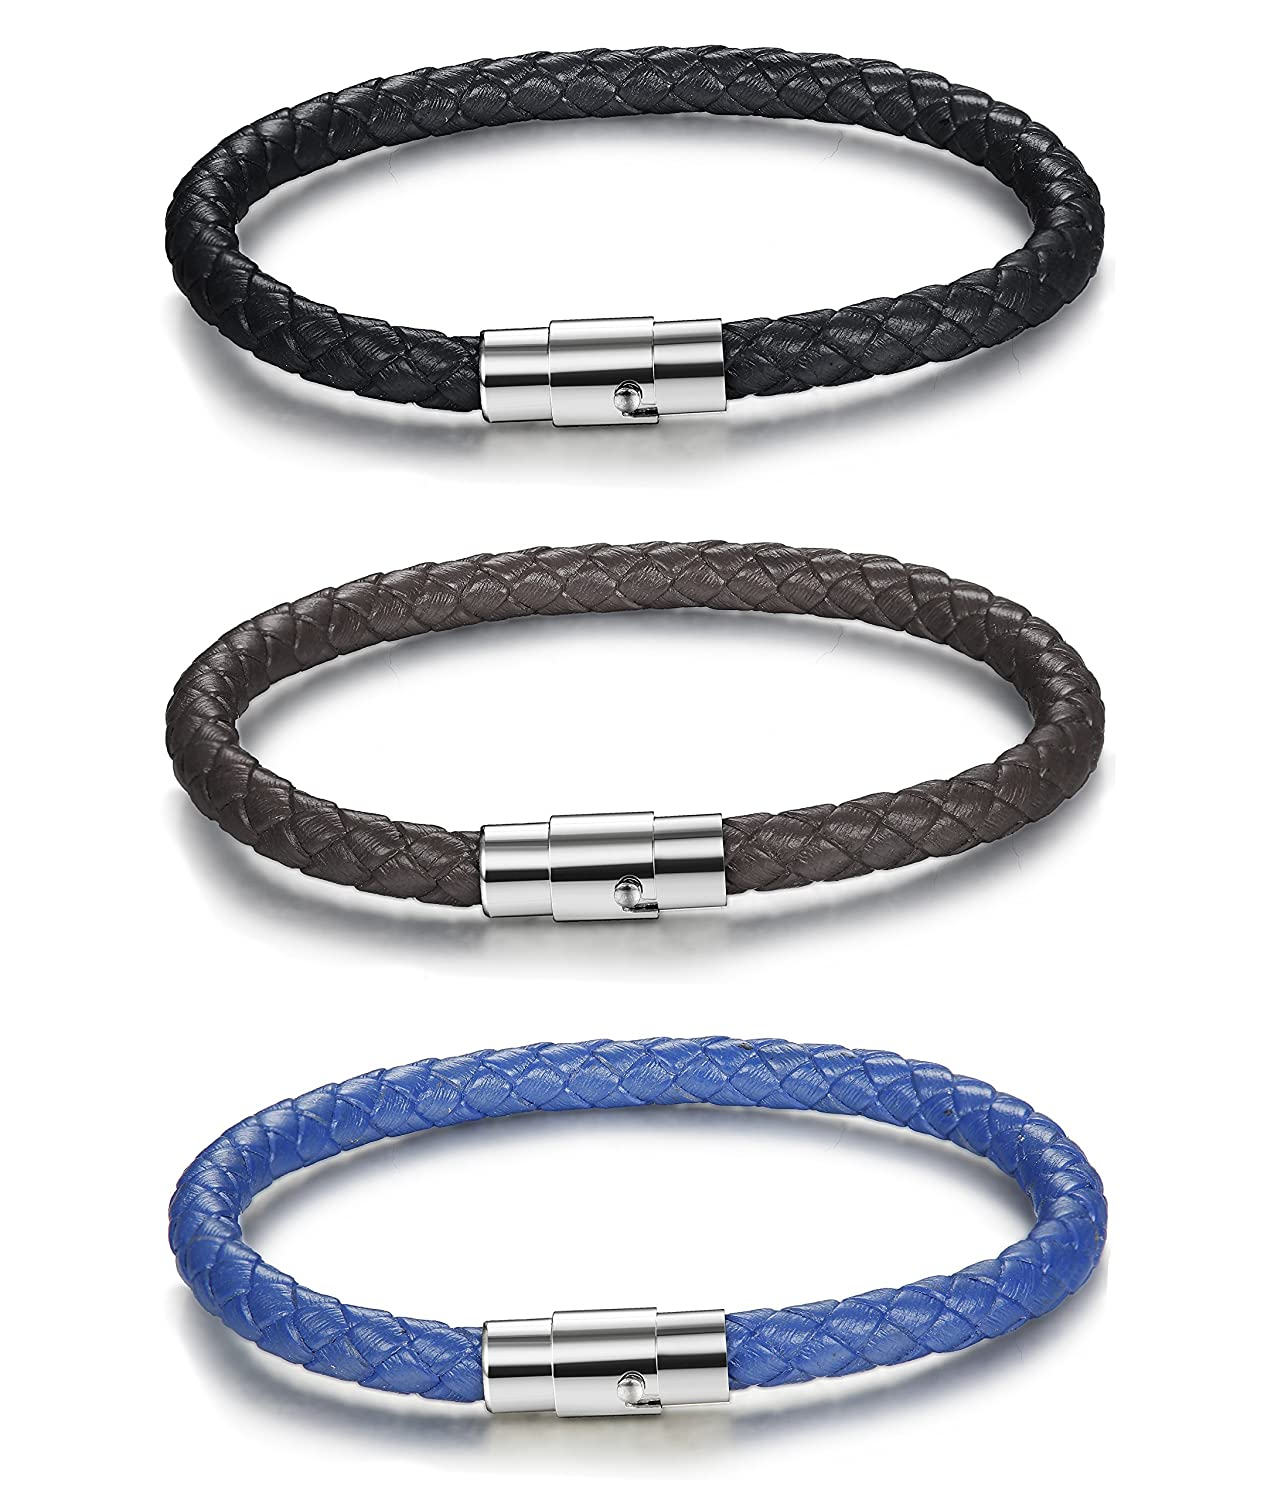 FIBO STEEL 2-3PCS Stainless Steel Braided Leather Bracelet for Men Women Wrist Cuff Bracelet 7.5-8.5 inches Bset744-7.5